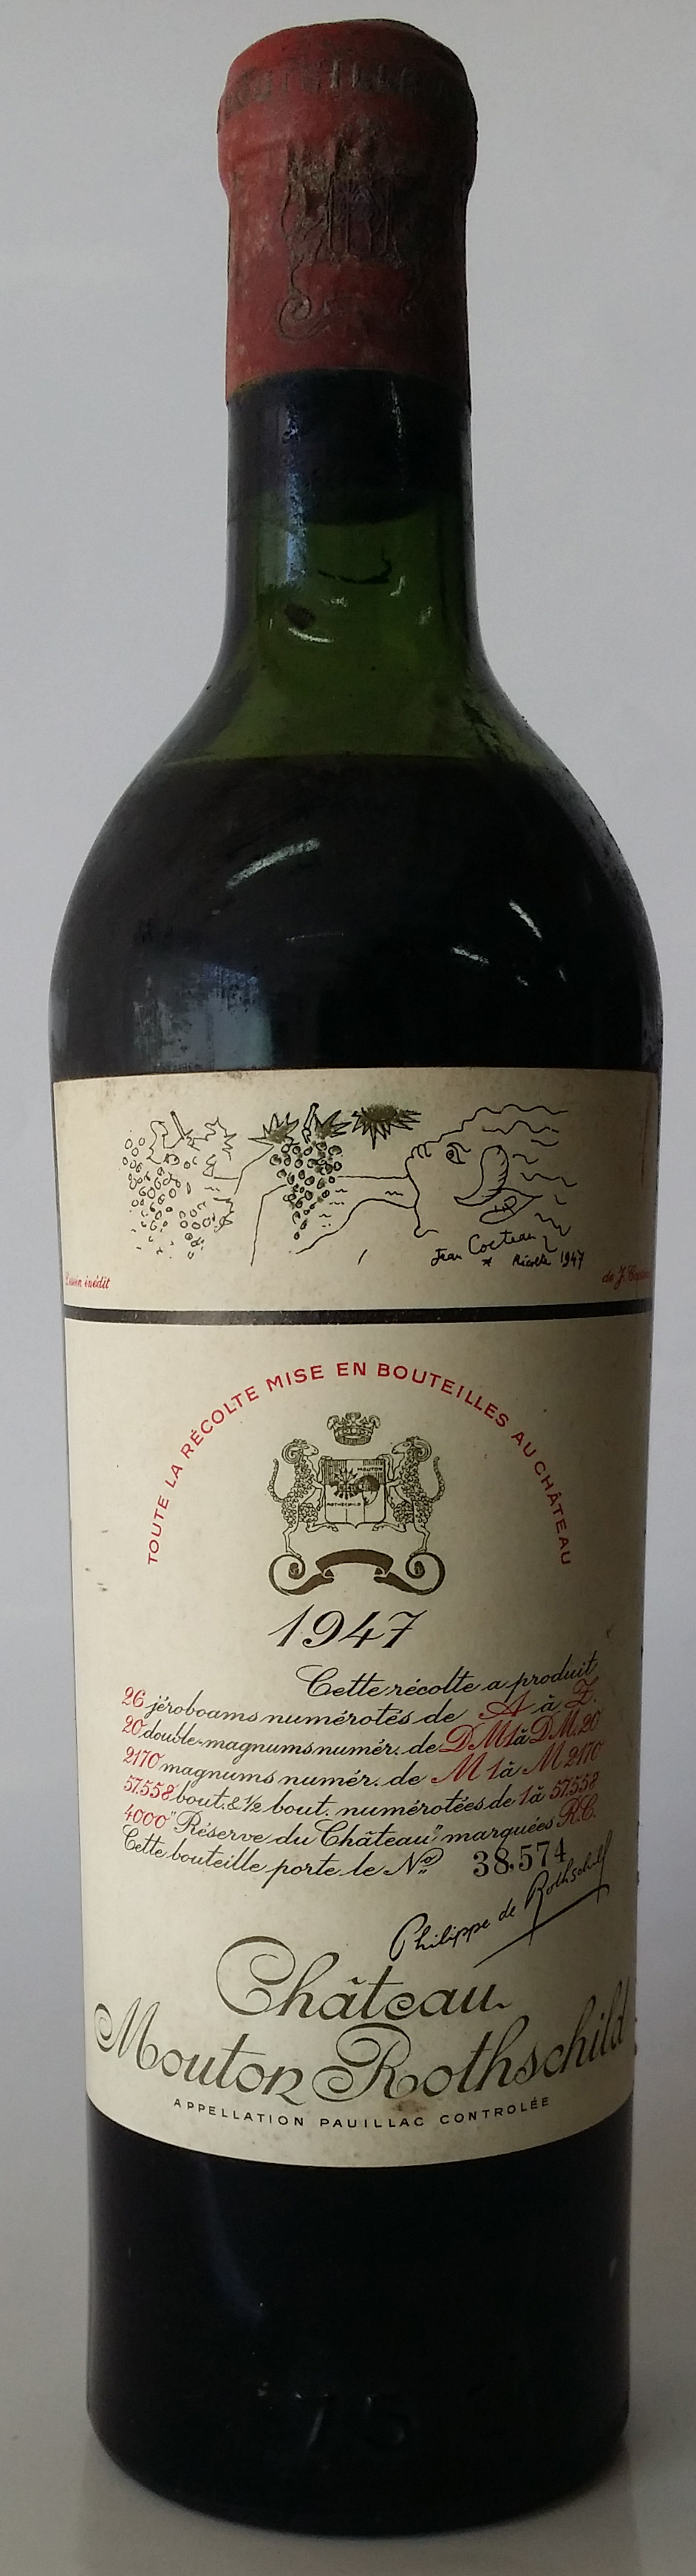 1947 Baron Philippe de Rothschild Chateau Mouton Rothschild